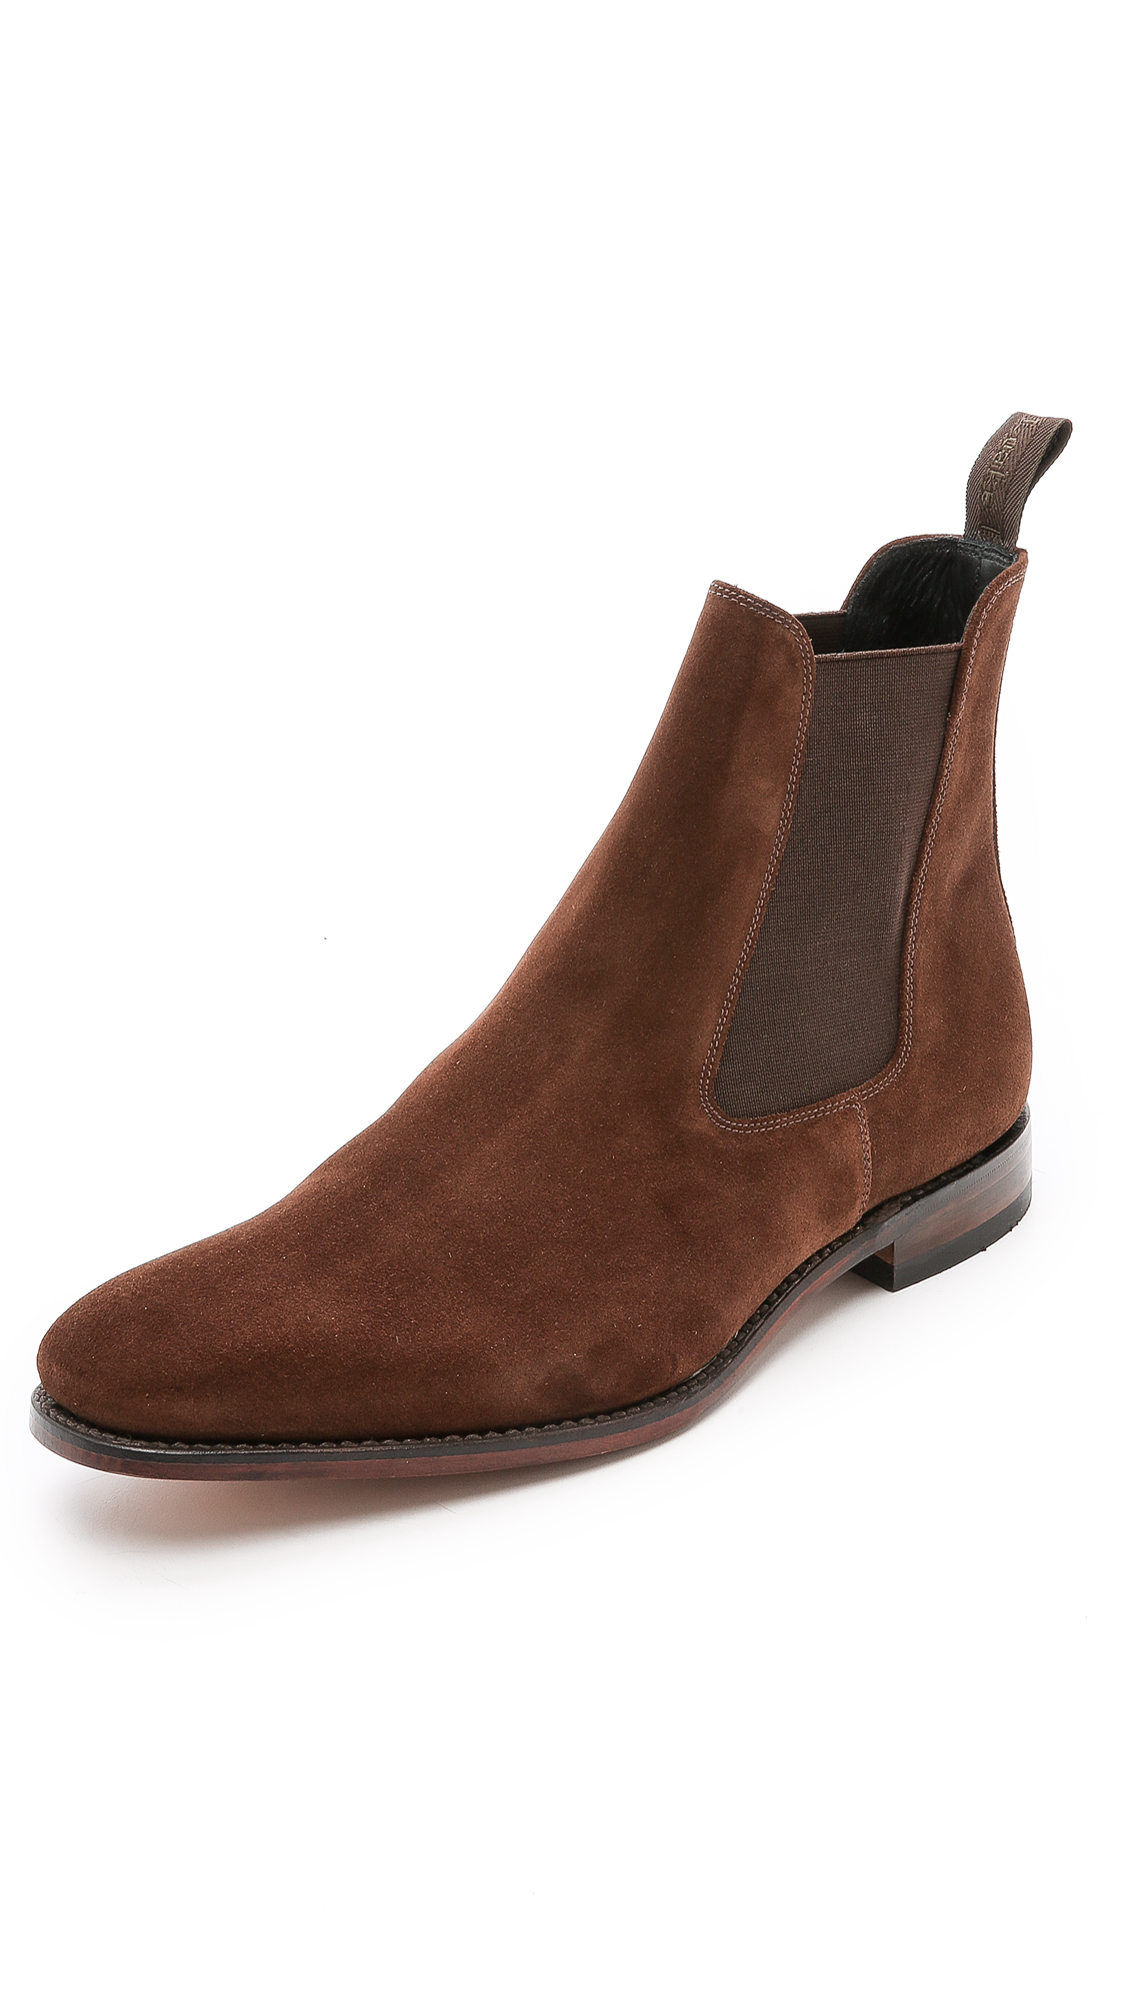 LOAKE 1880 1880 CHATSWORTH SUEDE CHELSEA BOOTS